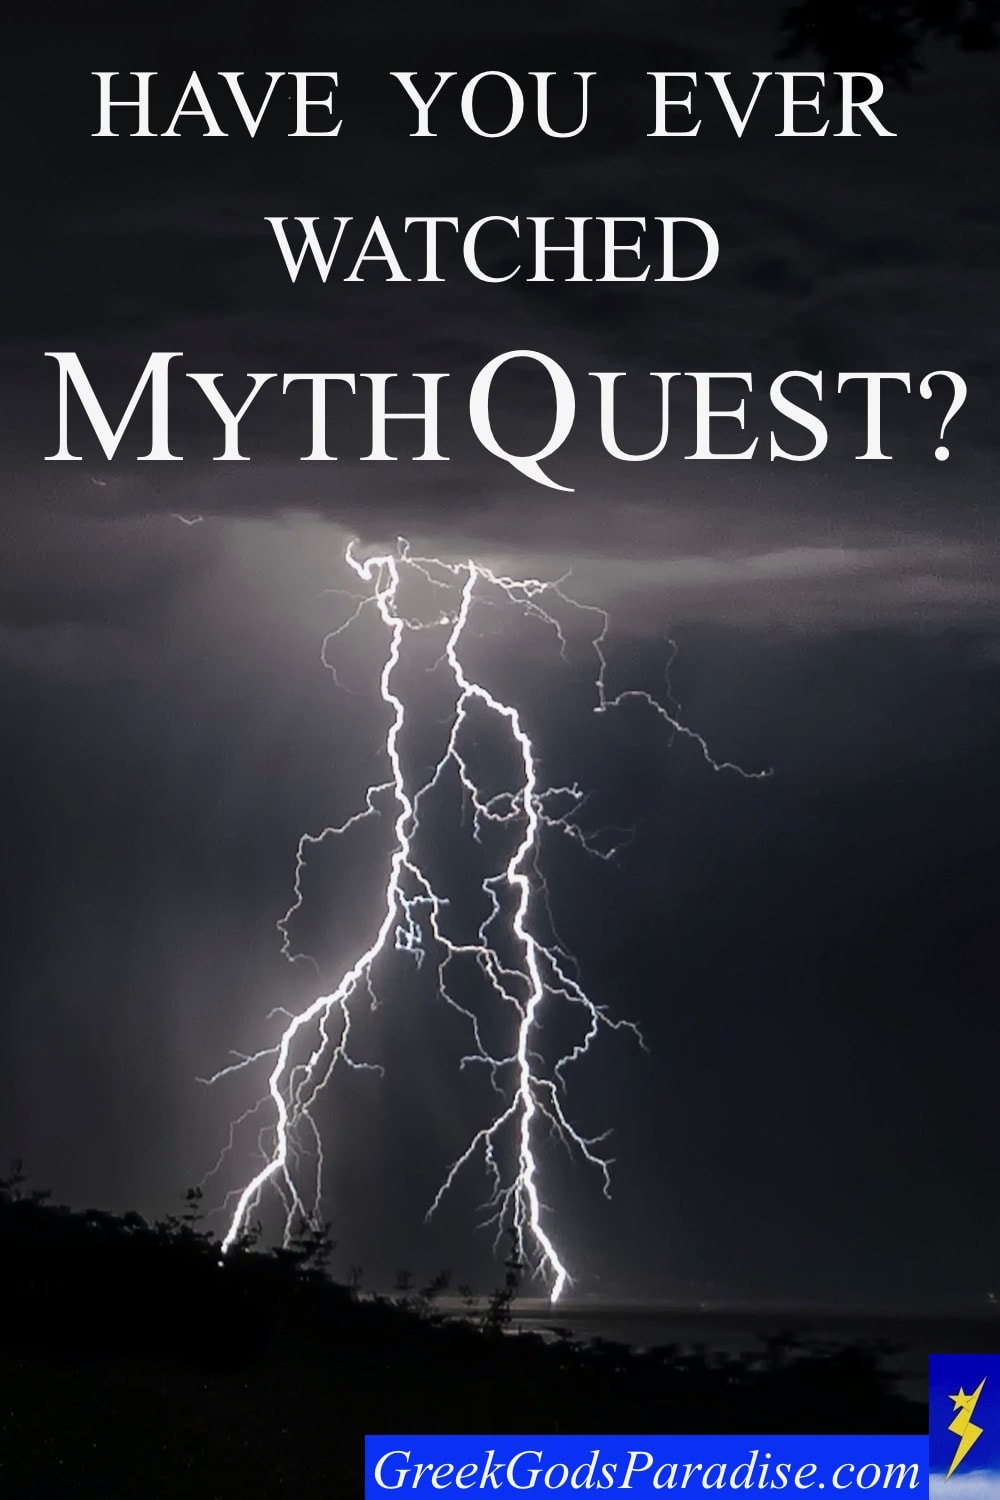 Have You Ever Watched Mythquest